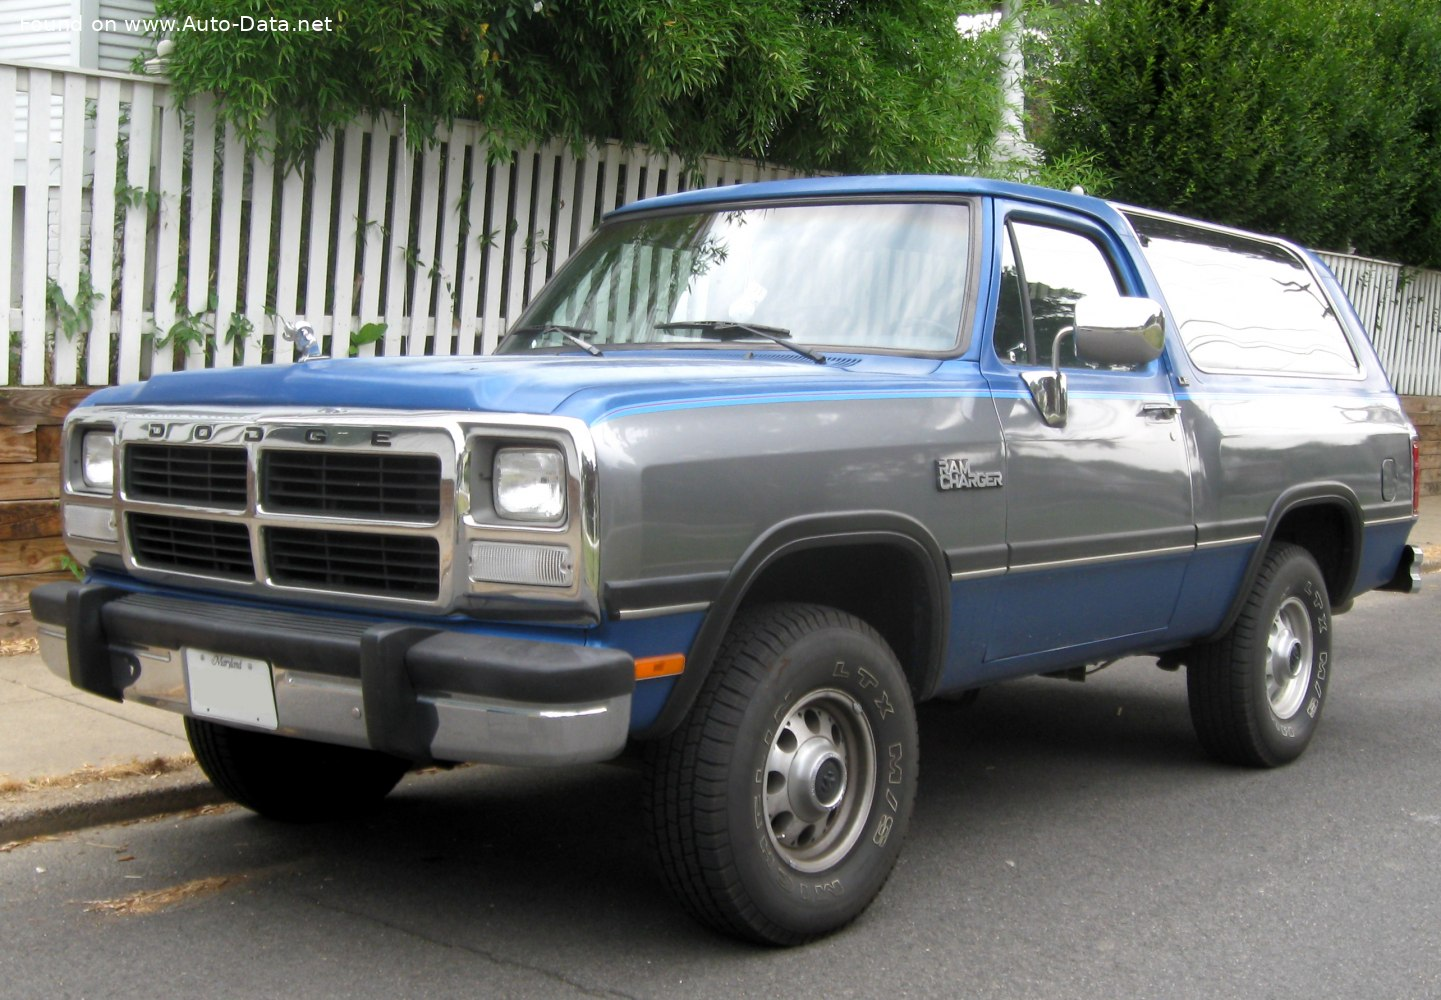 1987 Dodge Ramcharger 5 9 I V8 193 Hp Technical Specs Data Fuel Consumption Dimensions